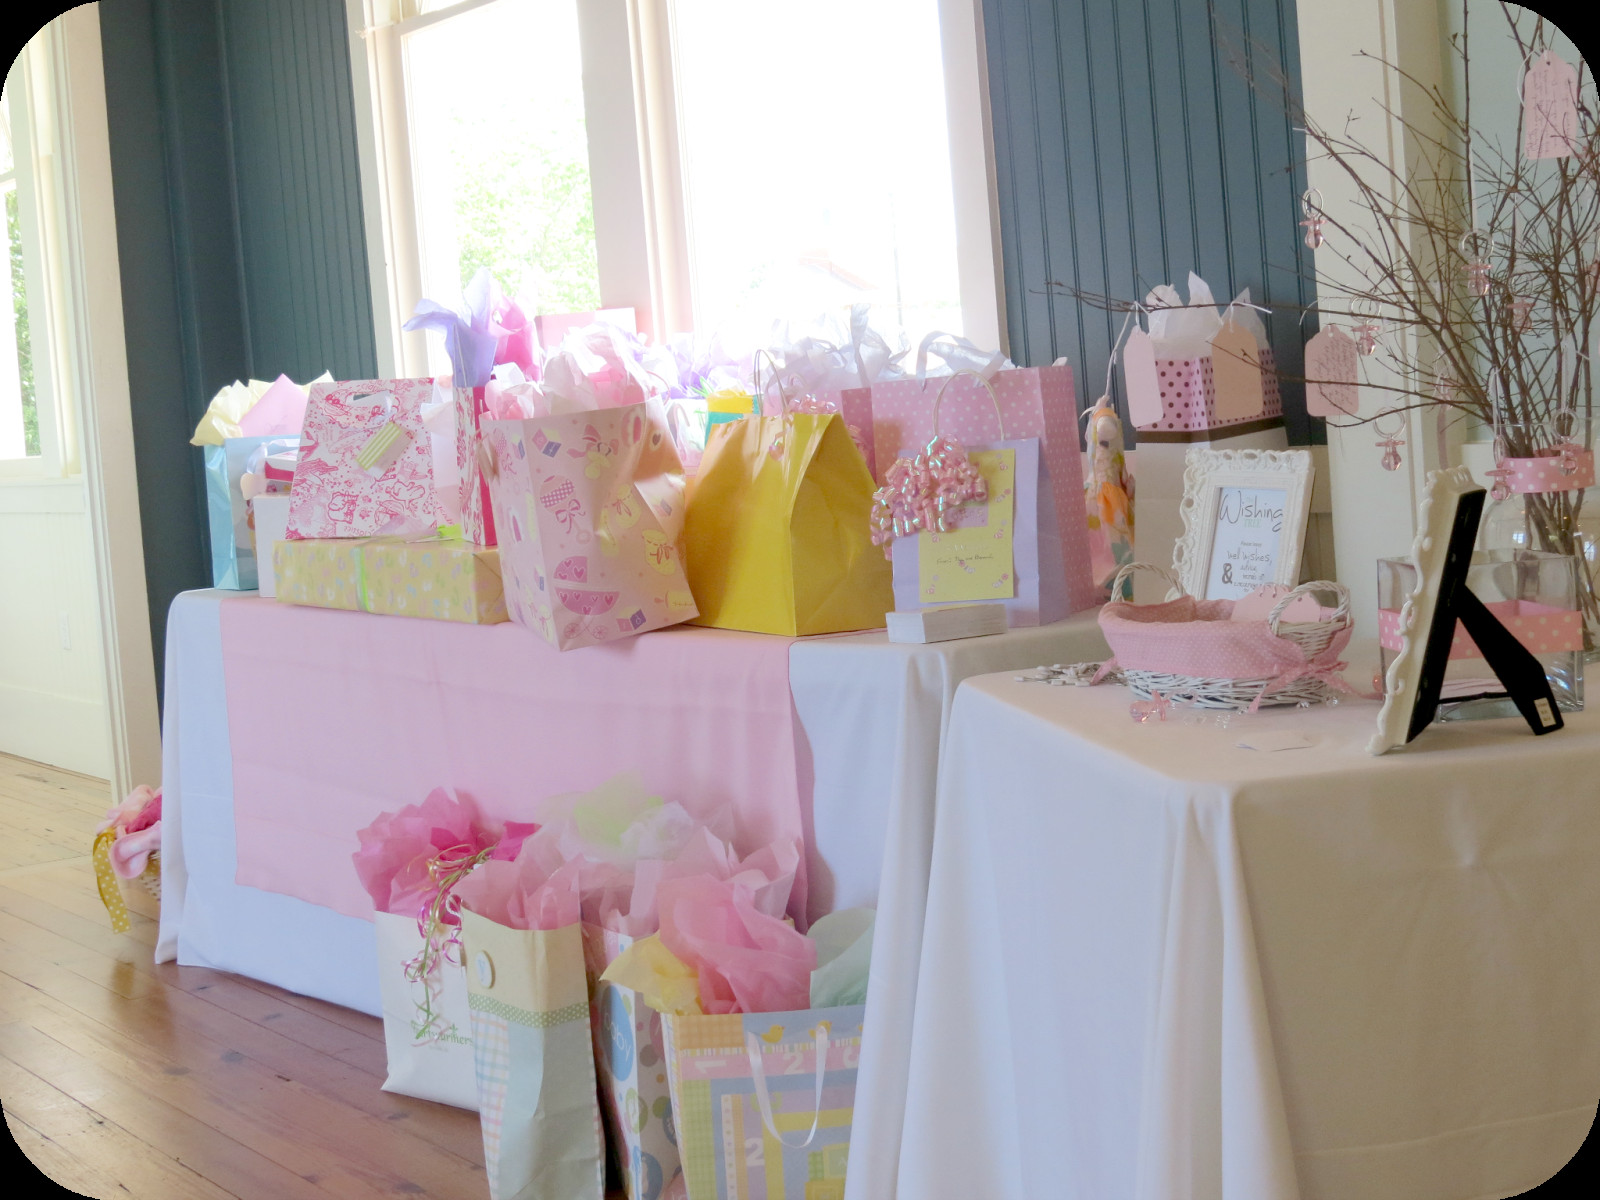 Decorating Ideas For Baby Shower Gift Table  Sweet Beginnings Baby Shower